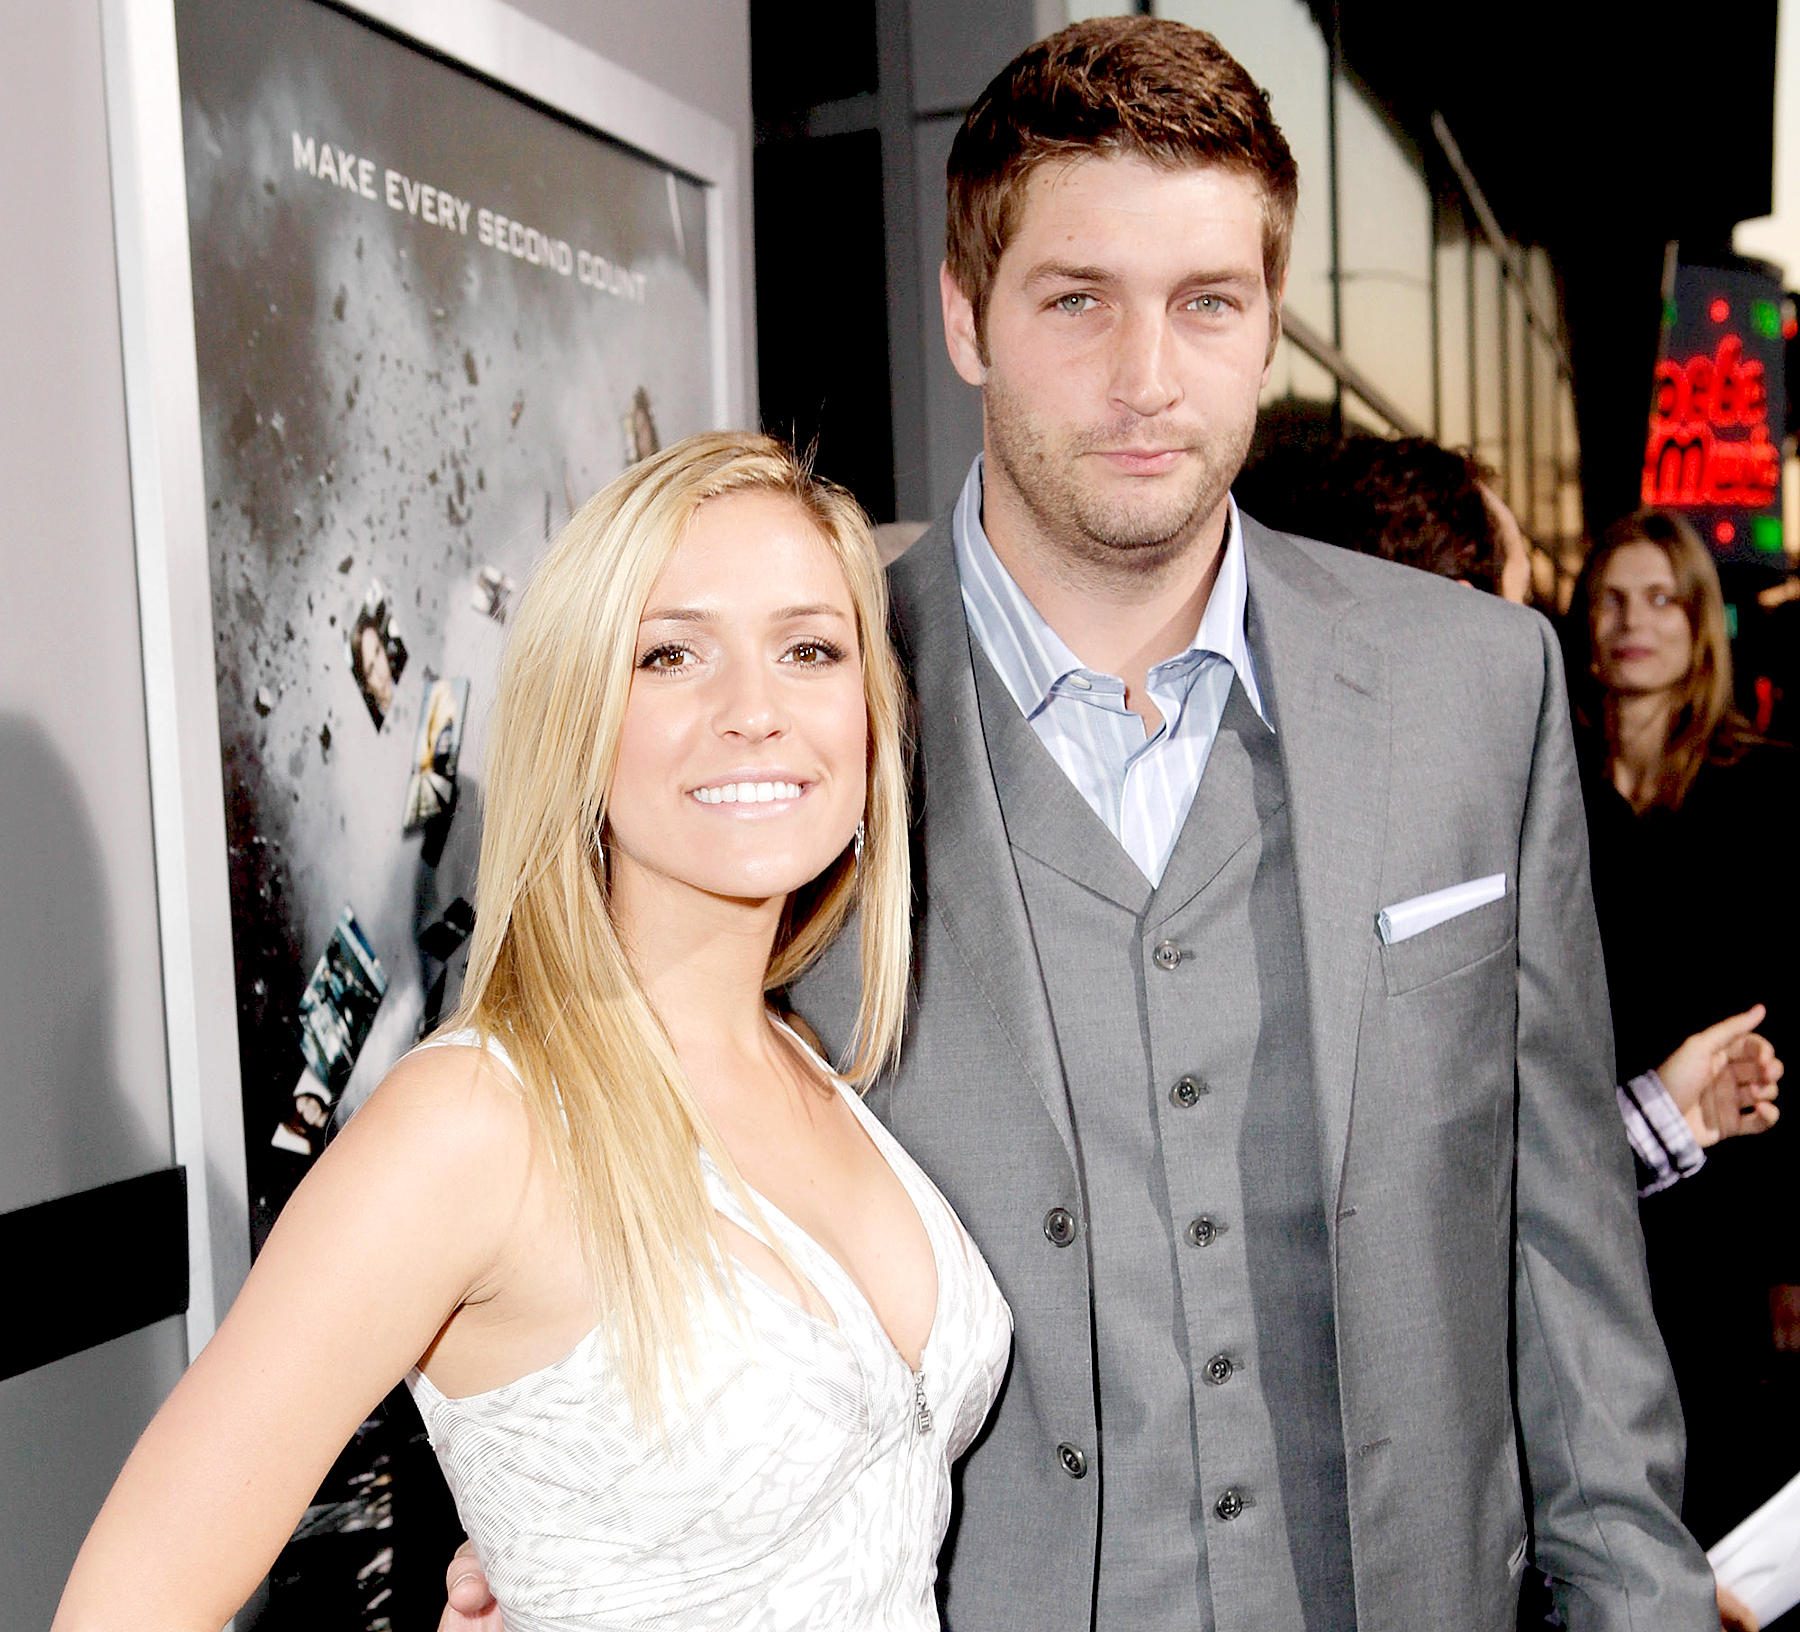 Kristin Cavallari And Jay Cutler Arrive At The